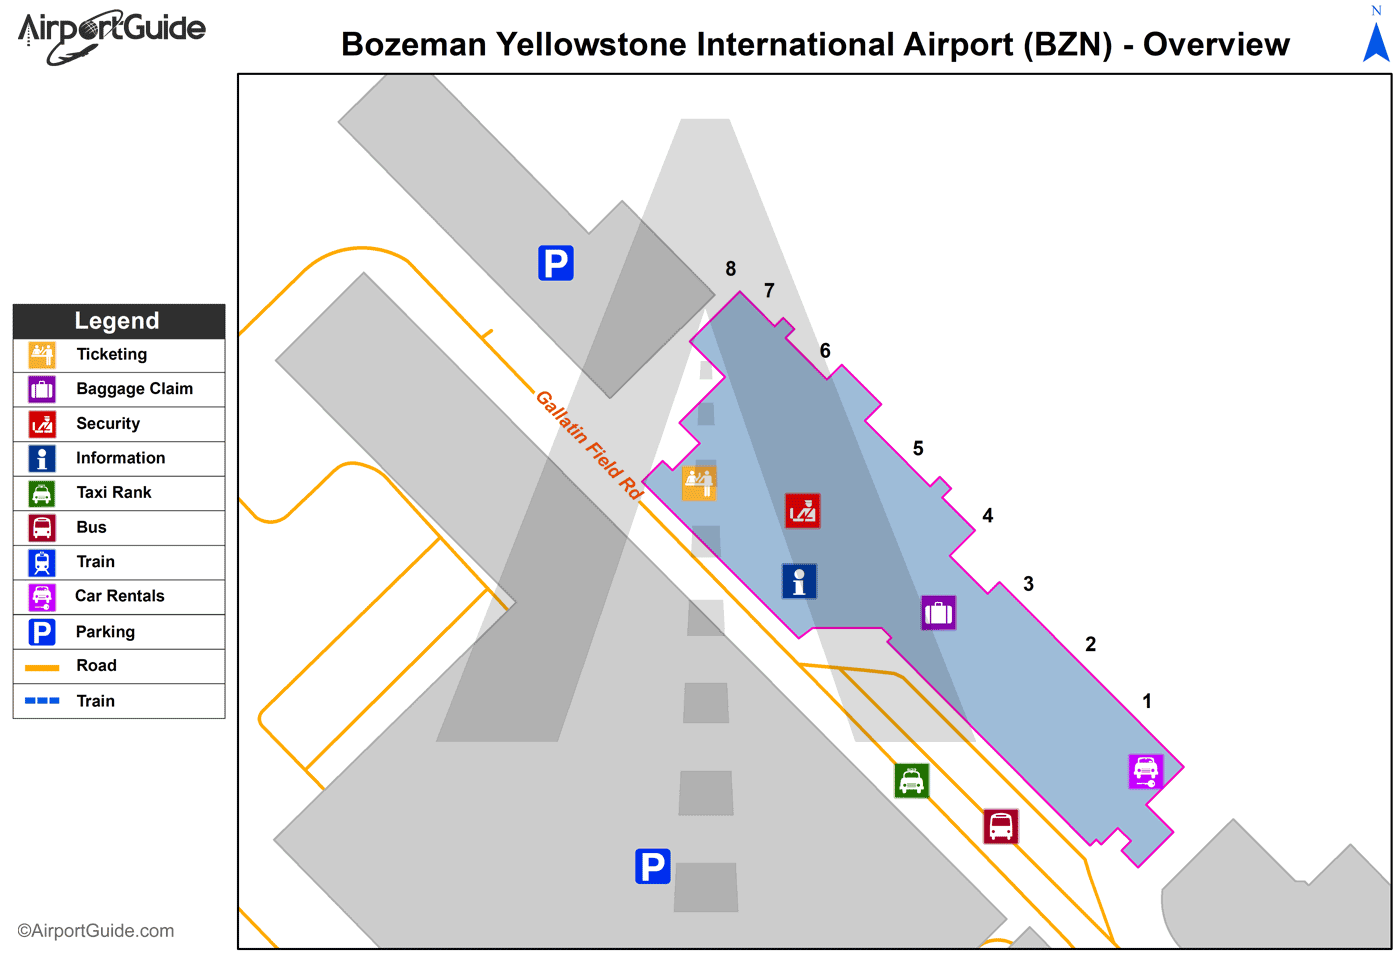 Bozeman - Bozeman Yellowstone International (BZN) Airport Terminal Map - Overview